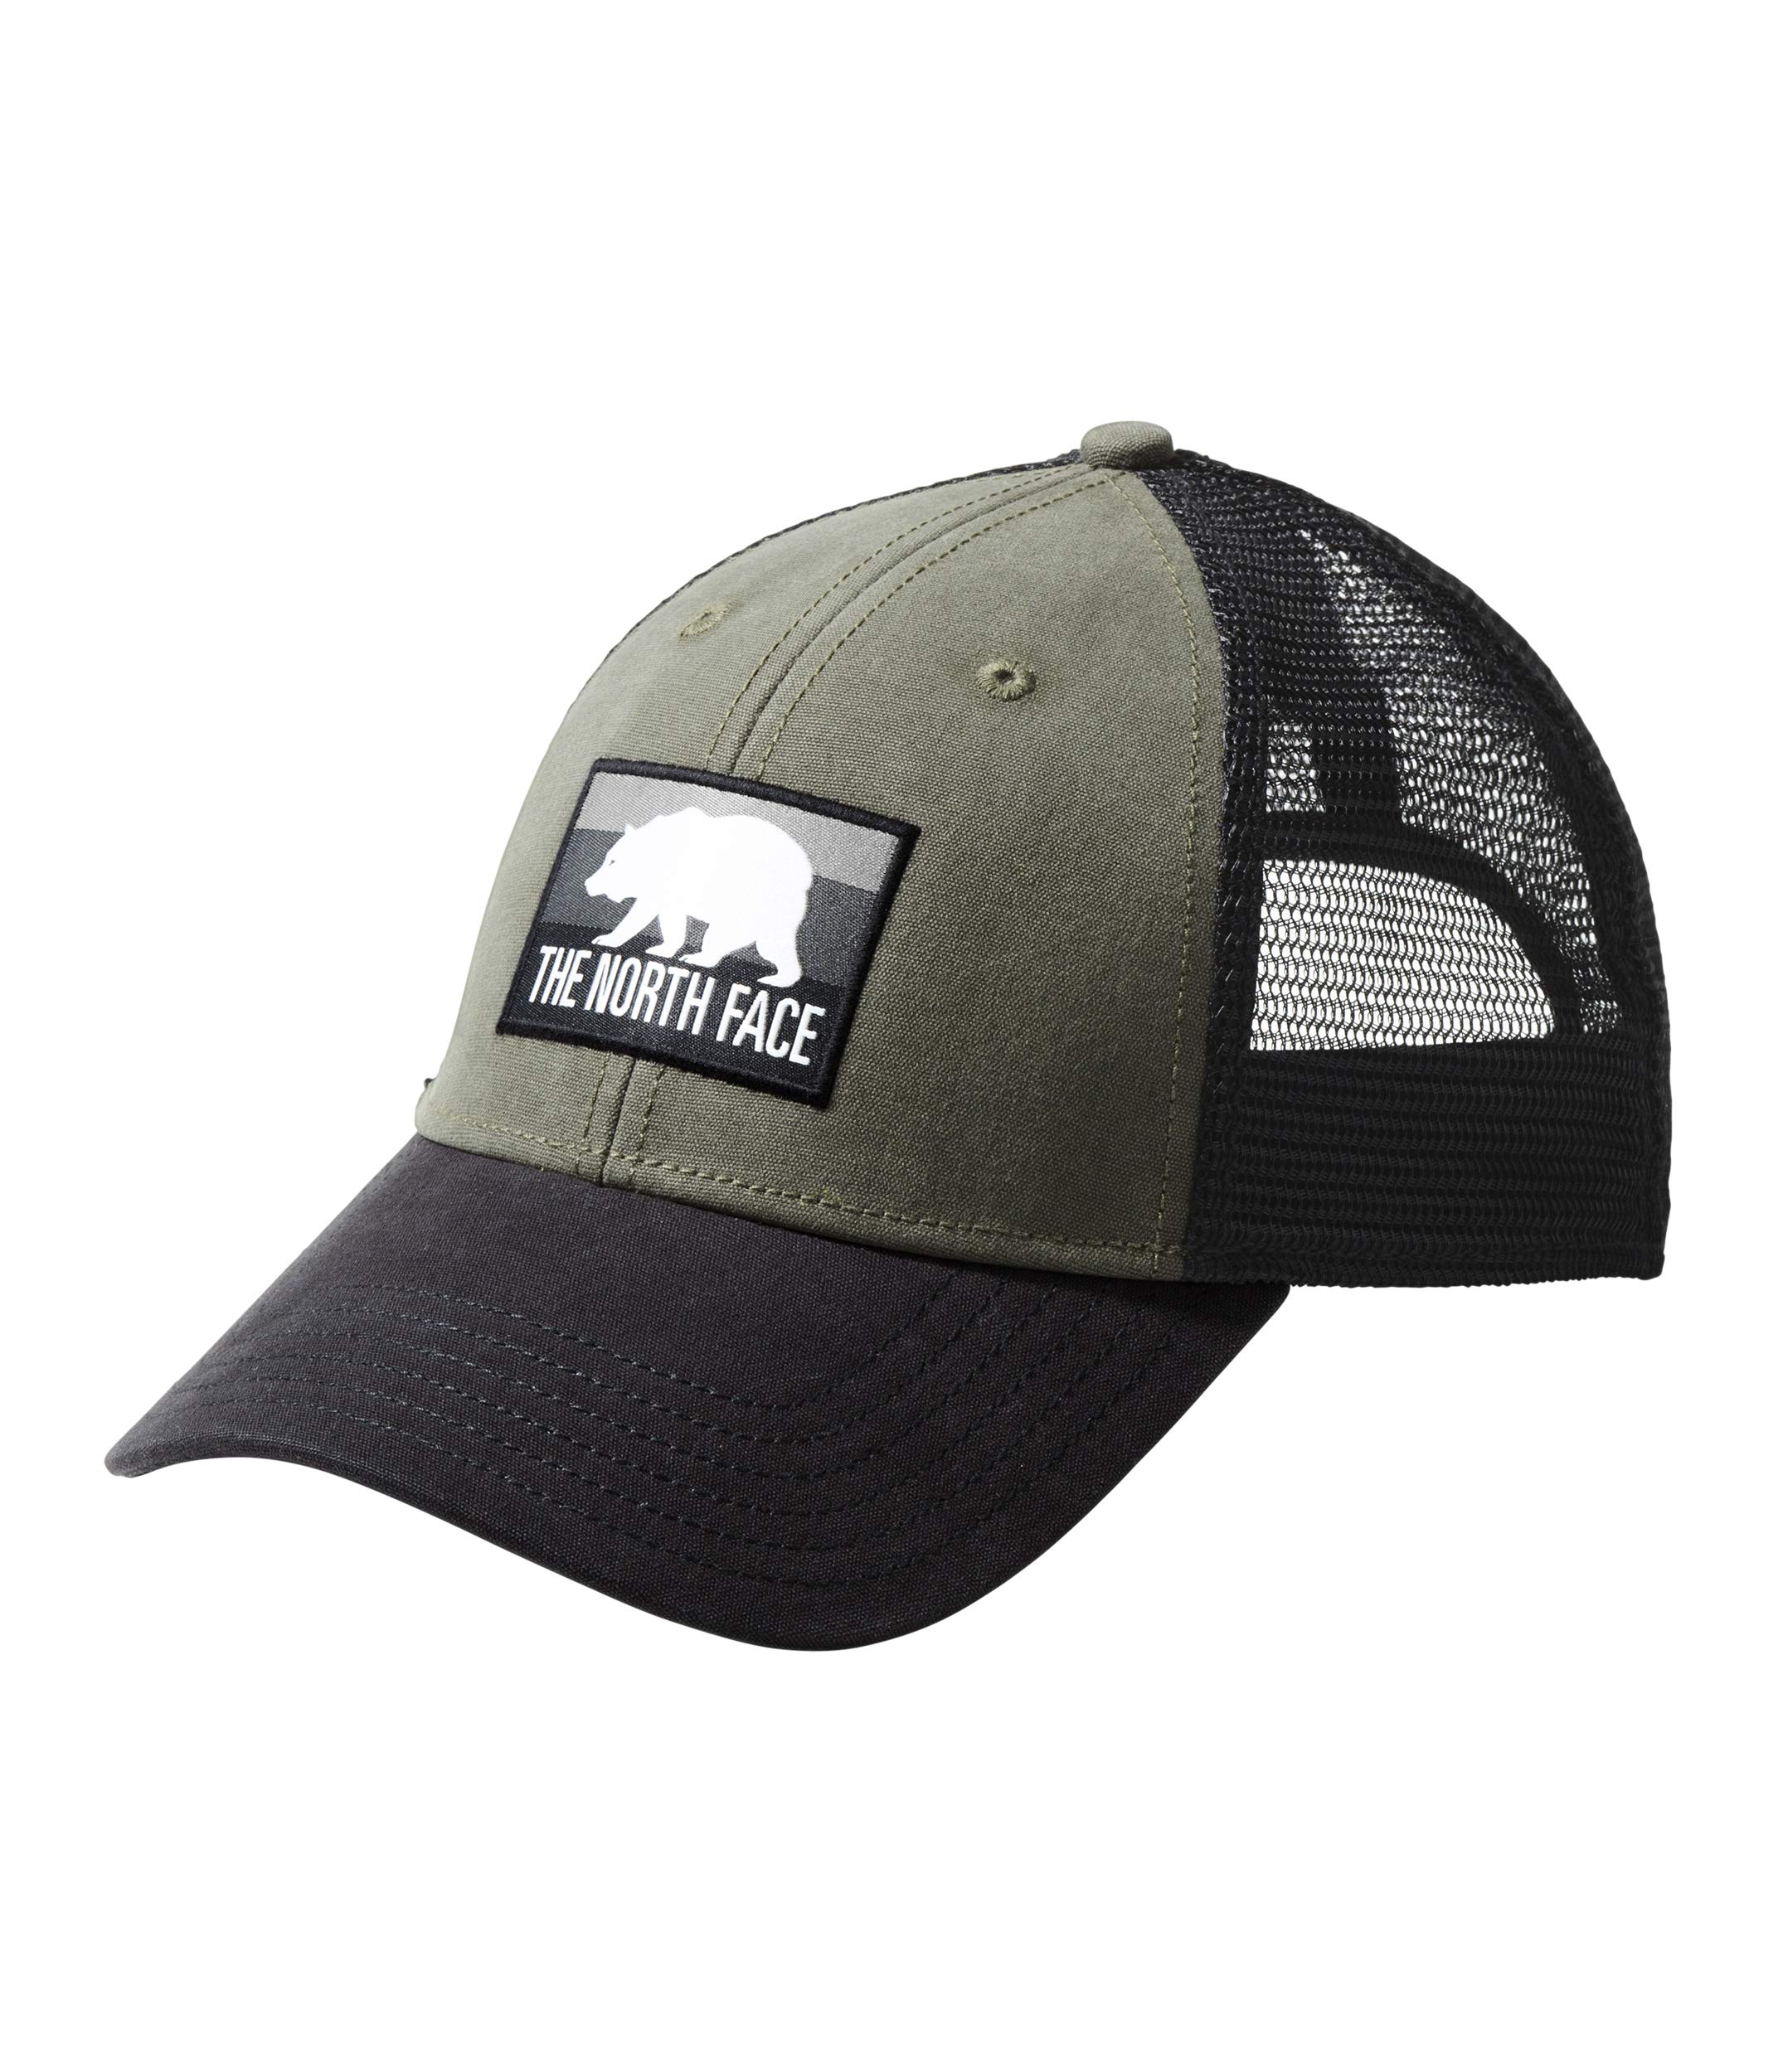 The North Face Unisex Patches Trucker Hat New Taupe Green/TNF Black/Asphalt Grey Multi One Size